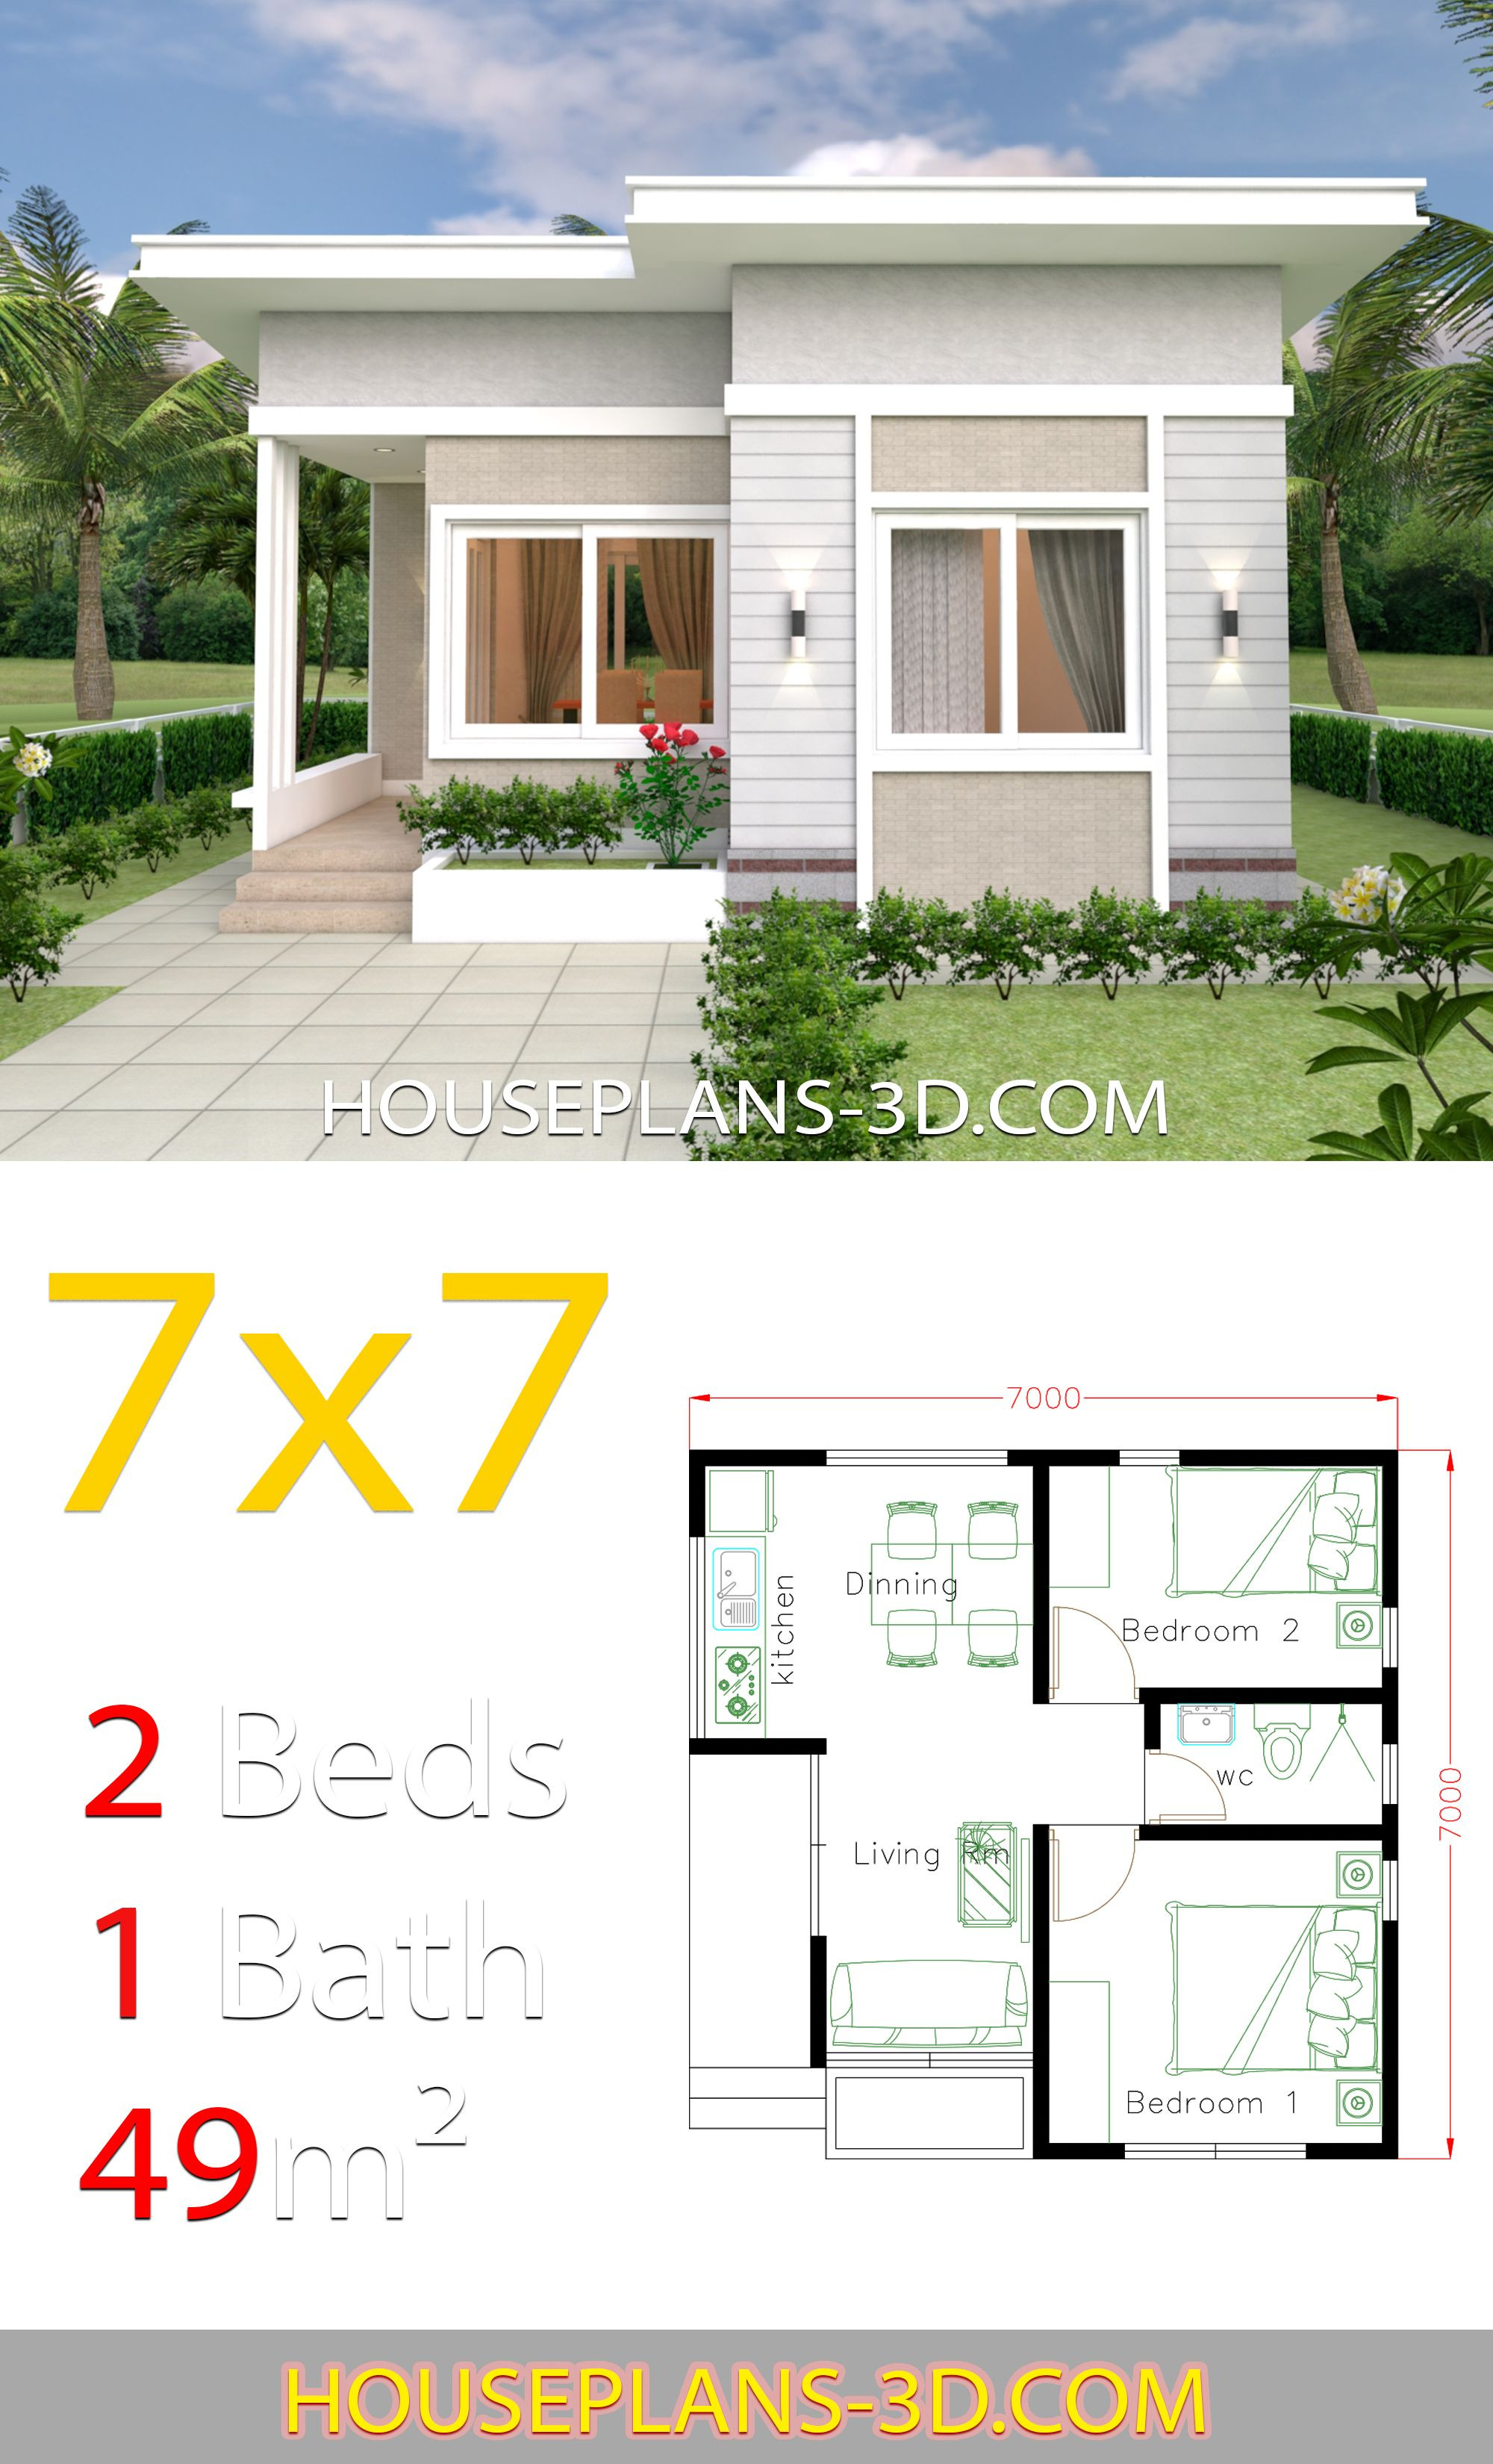 Design Small House Plans Awesome Small House Design 7x7 with 2 Bedrooms Dengan Gambar